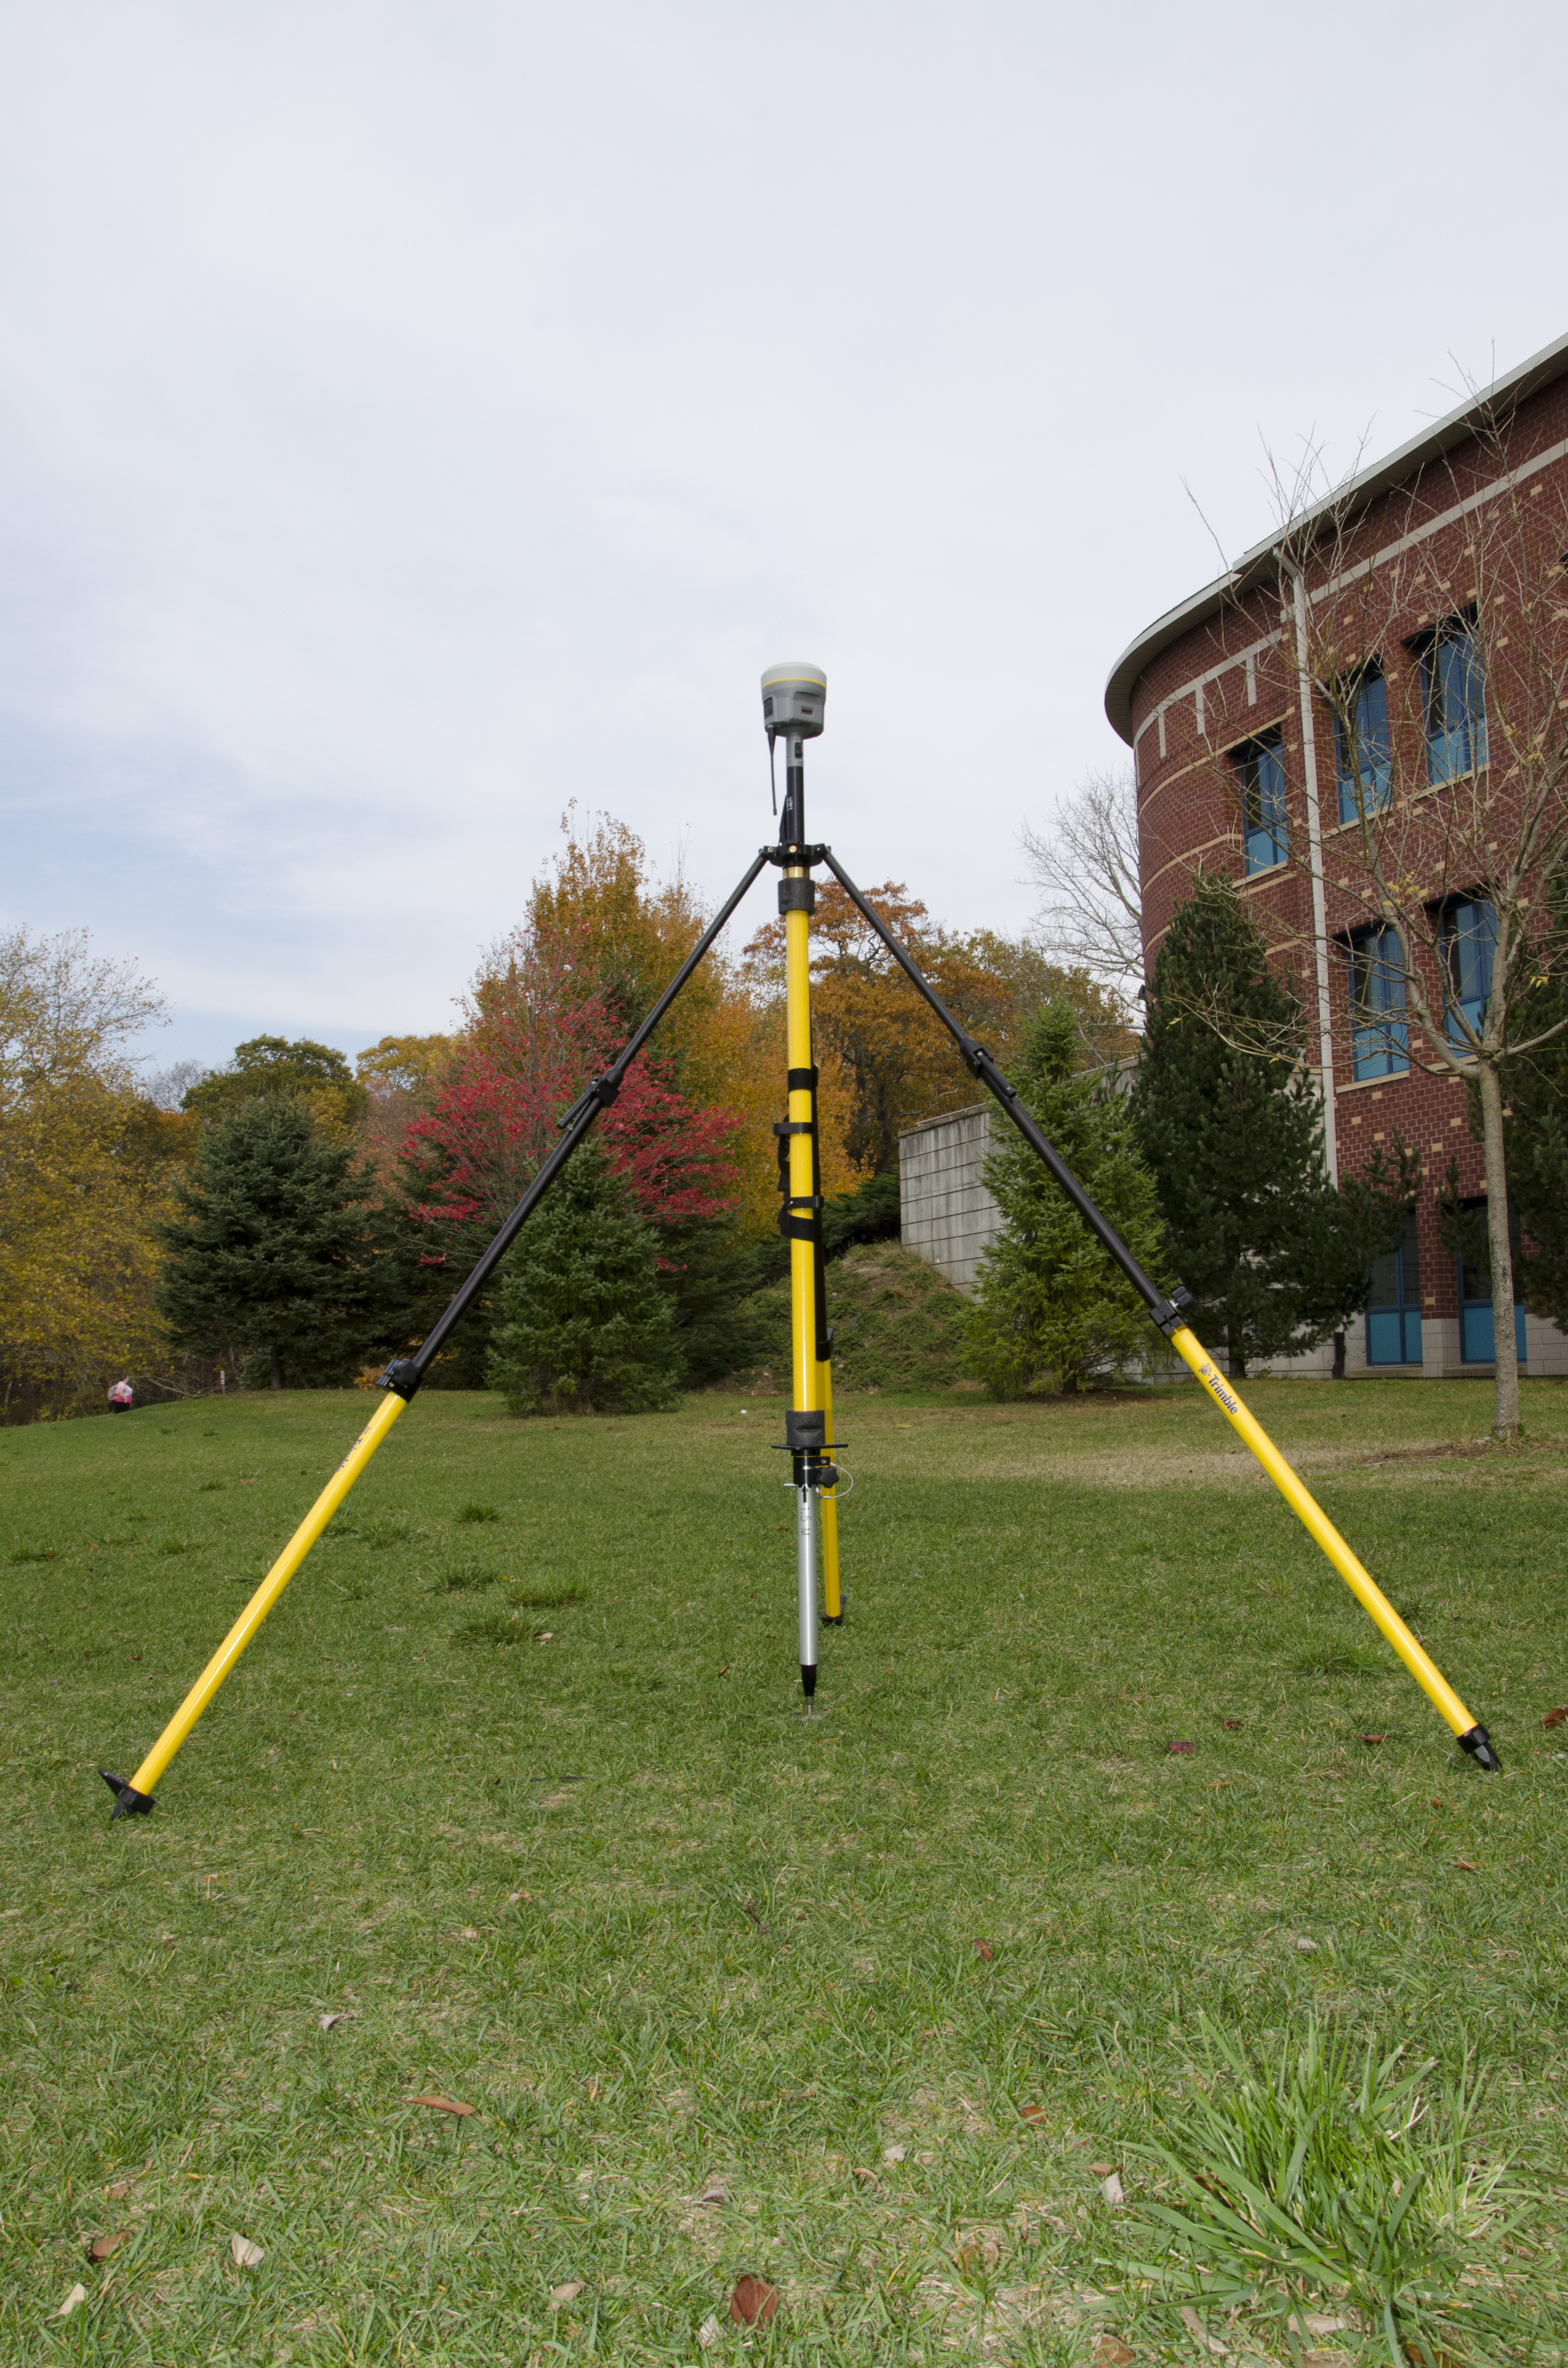 As part of its DOI-funded project, the NPS purchased new survey-grade GPS units to collect high-resolution elevation information on park resources and facilities. NPS photo/E. Nicosia.